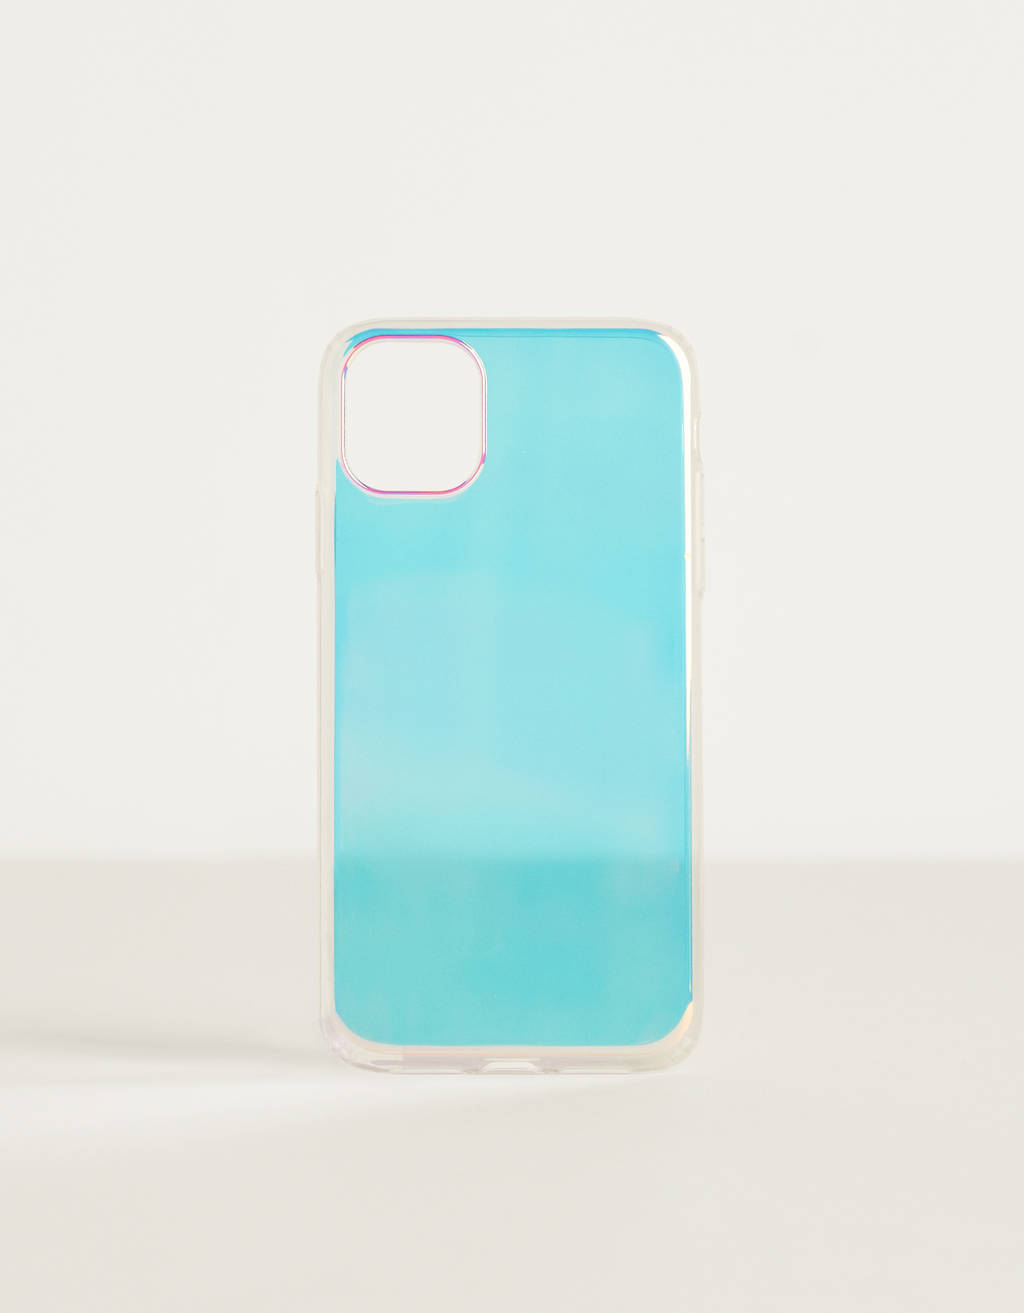 Iridescent iPhone 11 Pro Max case